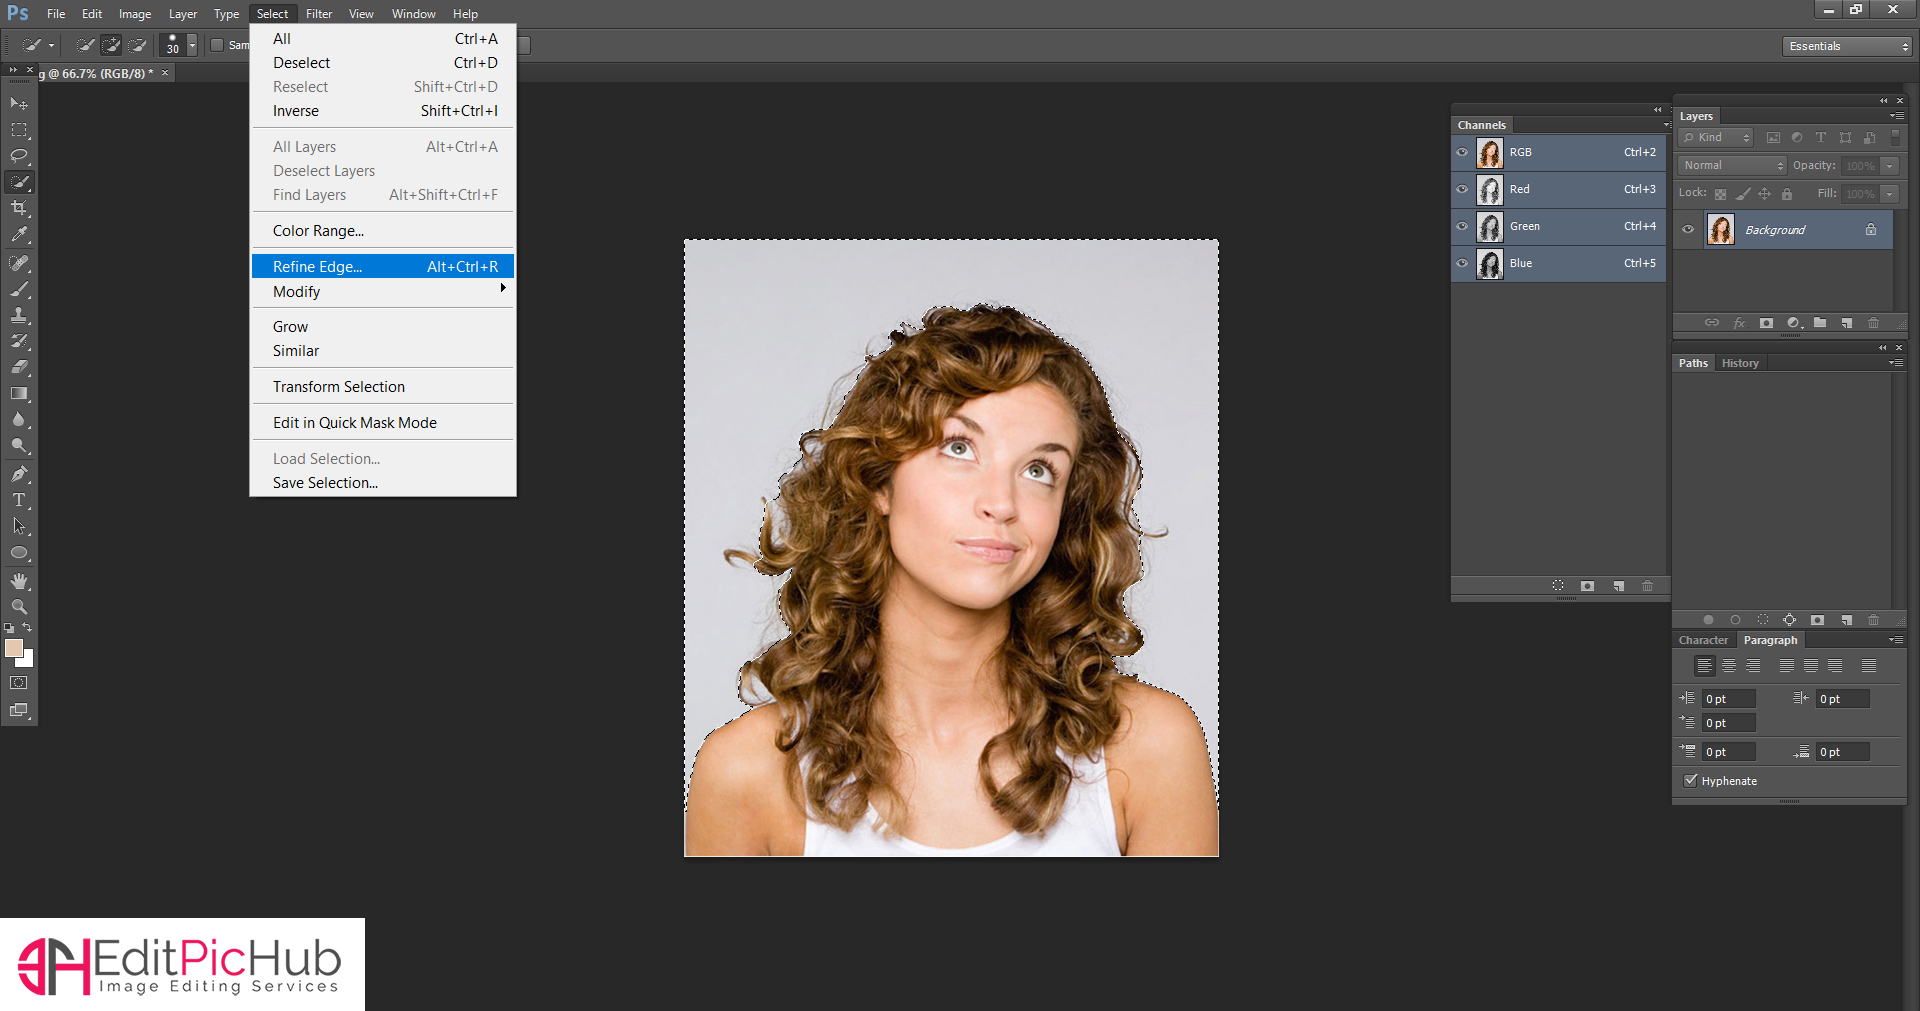 HOW TO REMOVE BACKGROUND